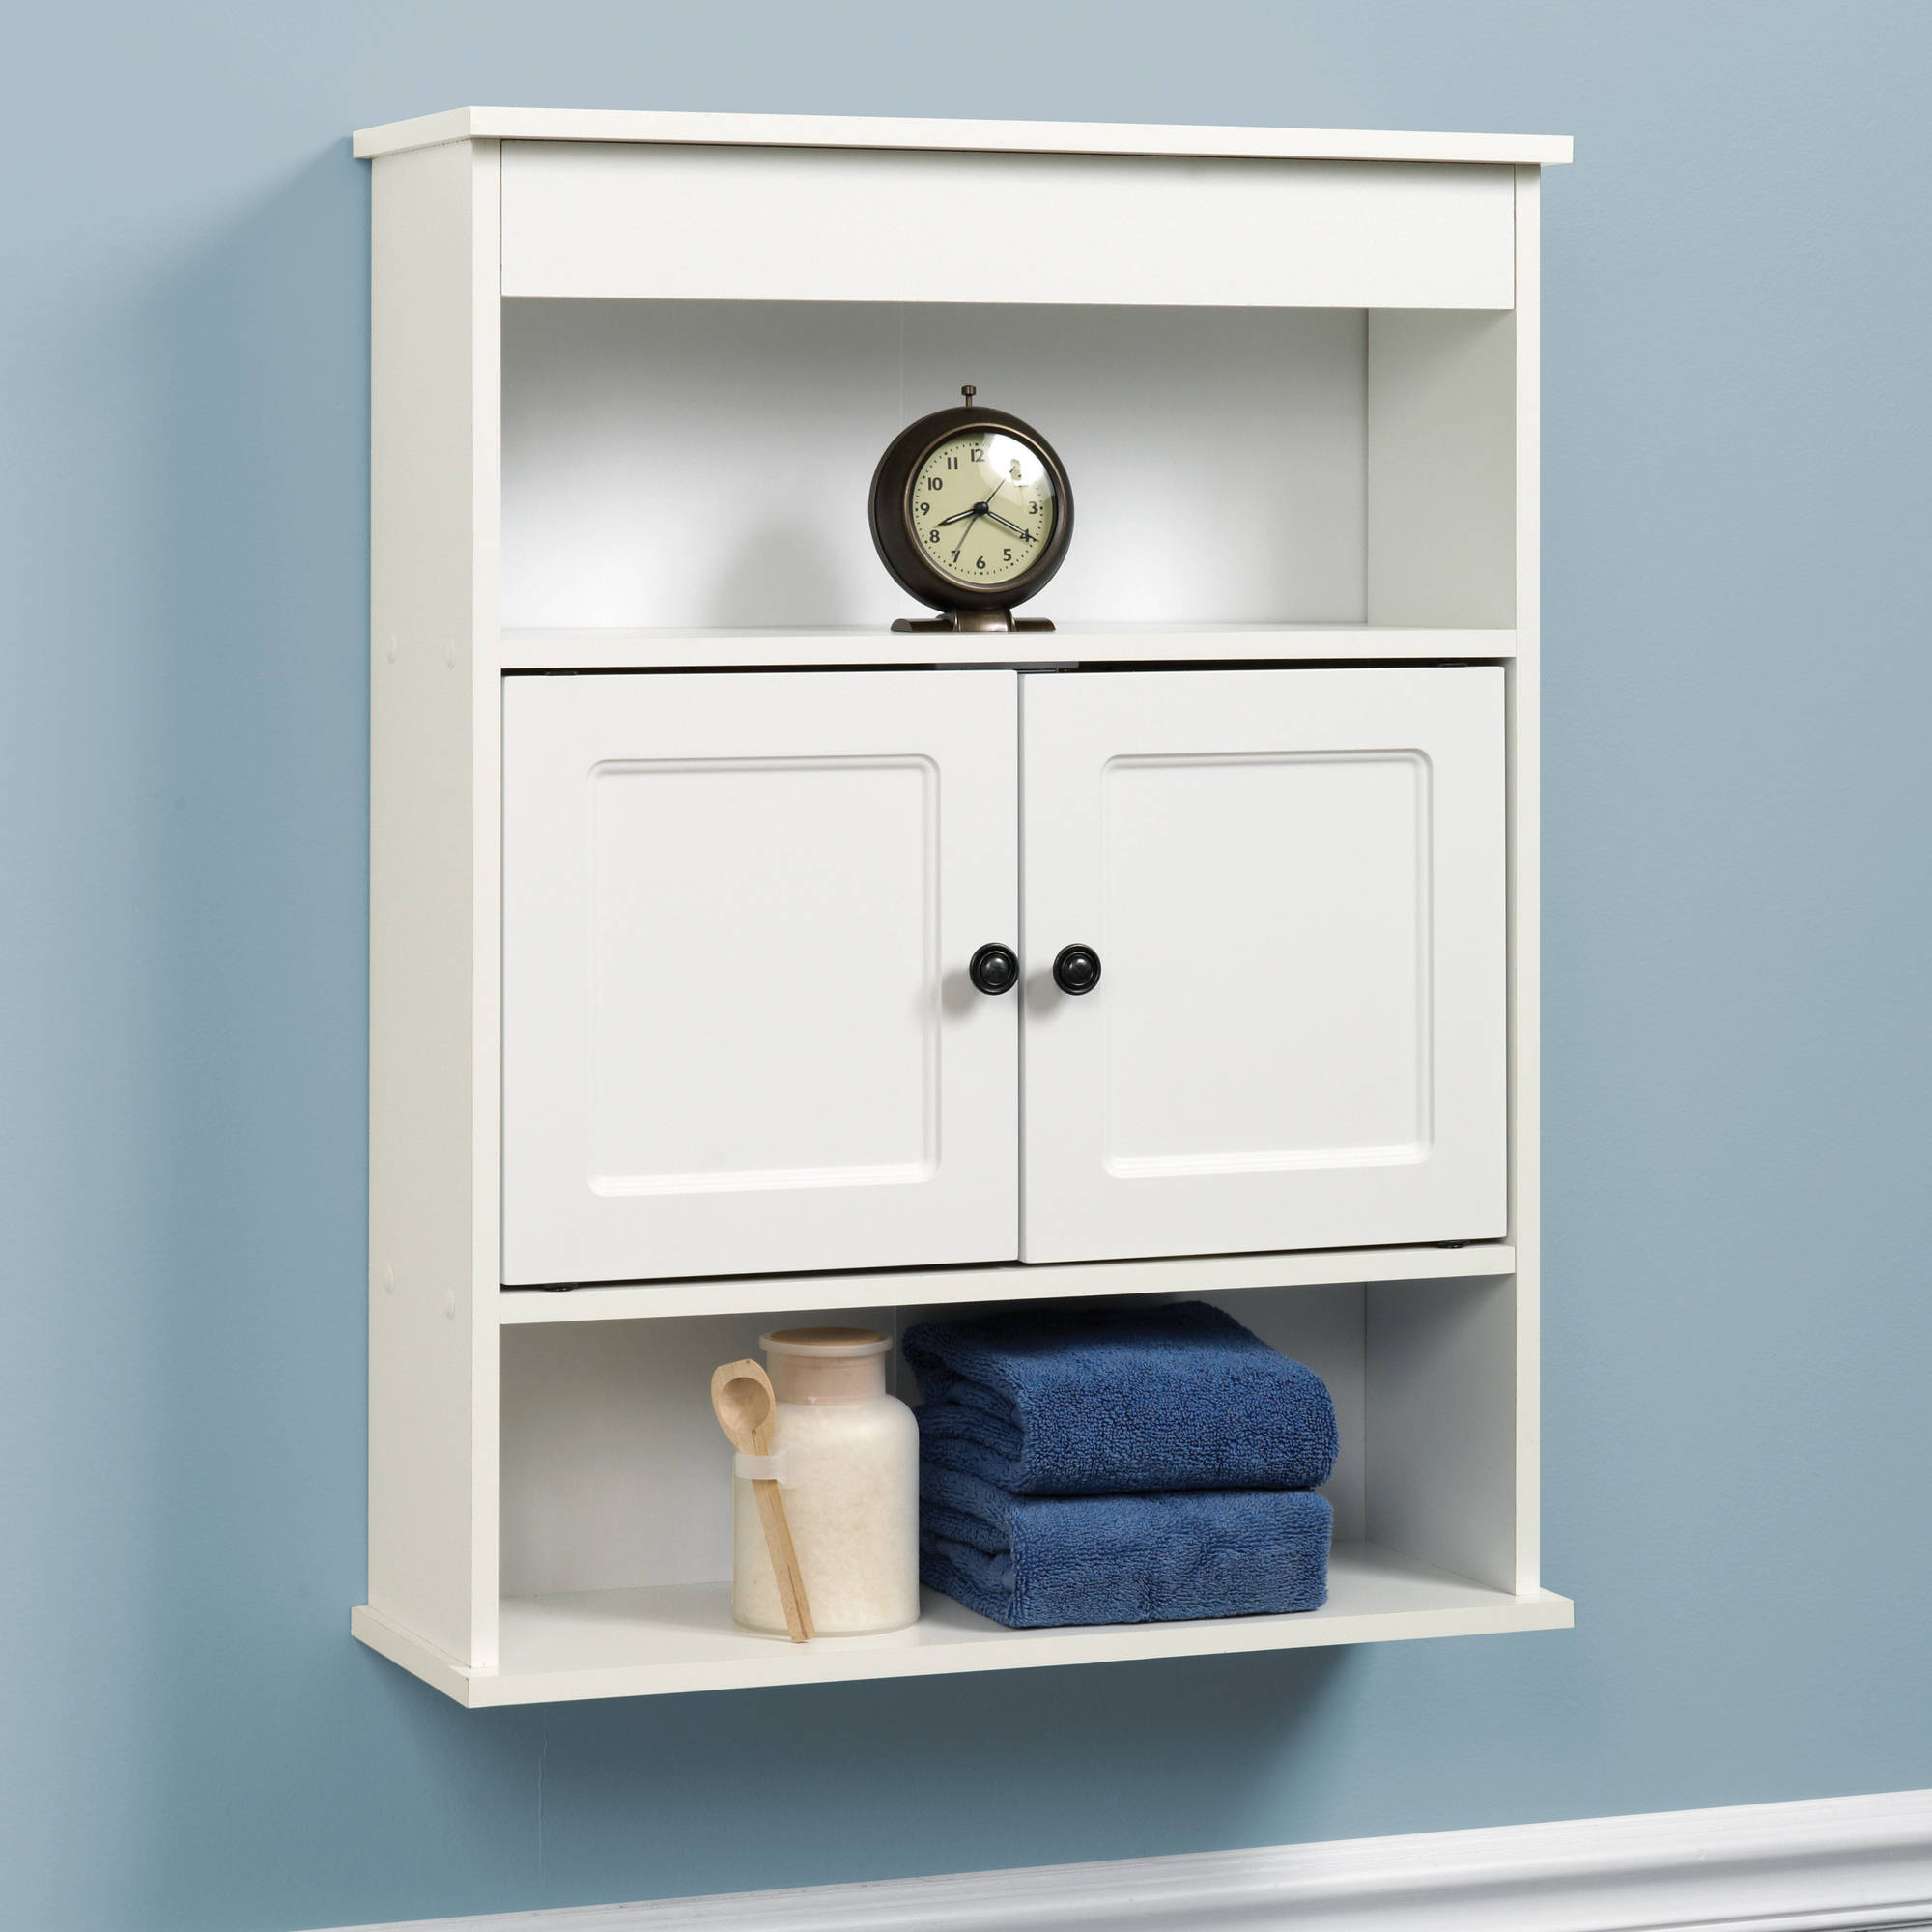 Cabinet Wall Bathroom Storage White Shelf Organizer Over